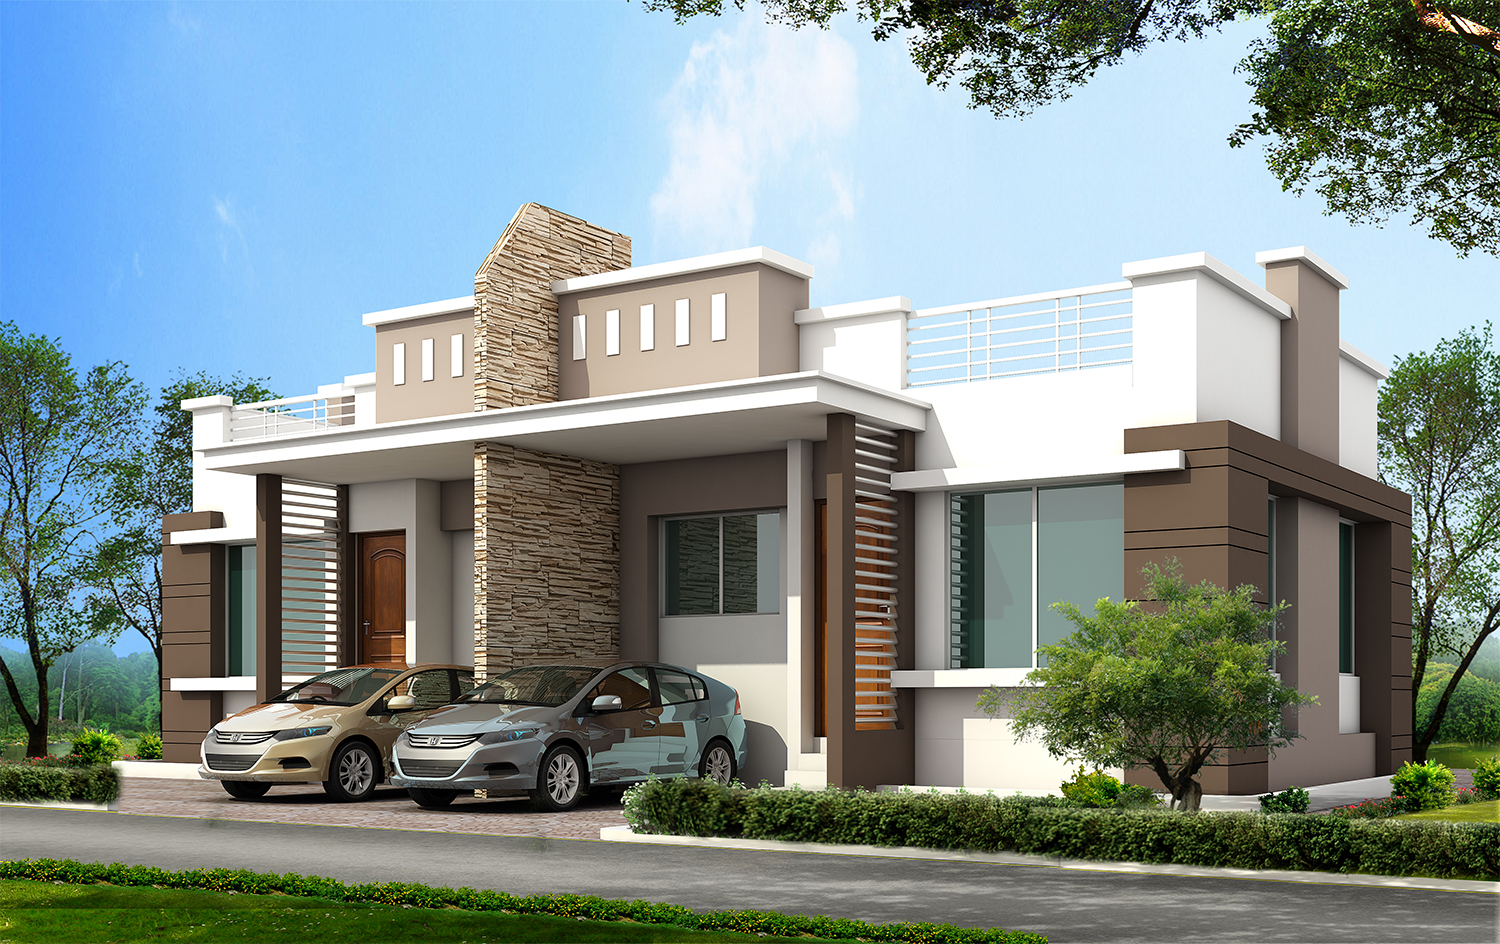 Real Estate Company Top Builders In Pune